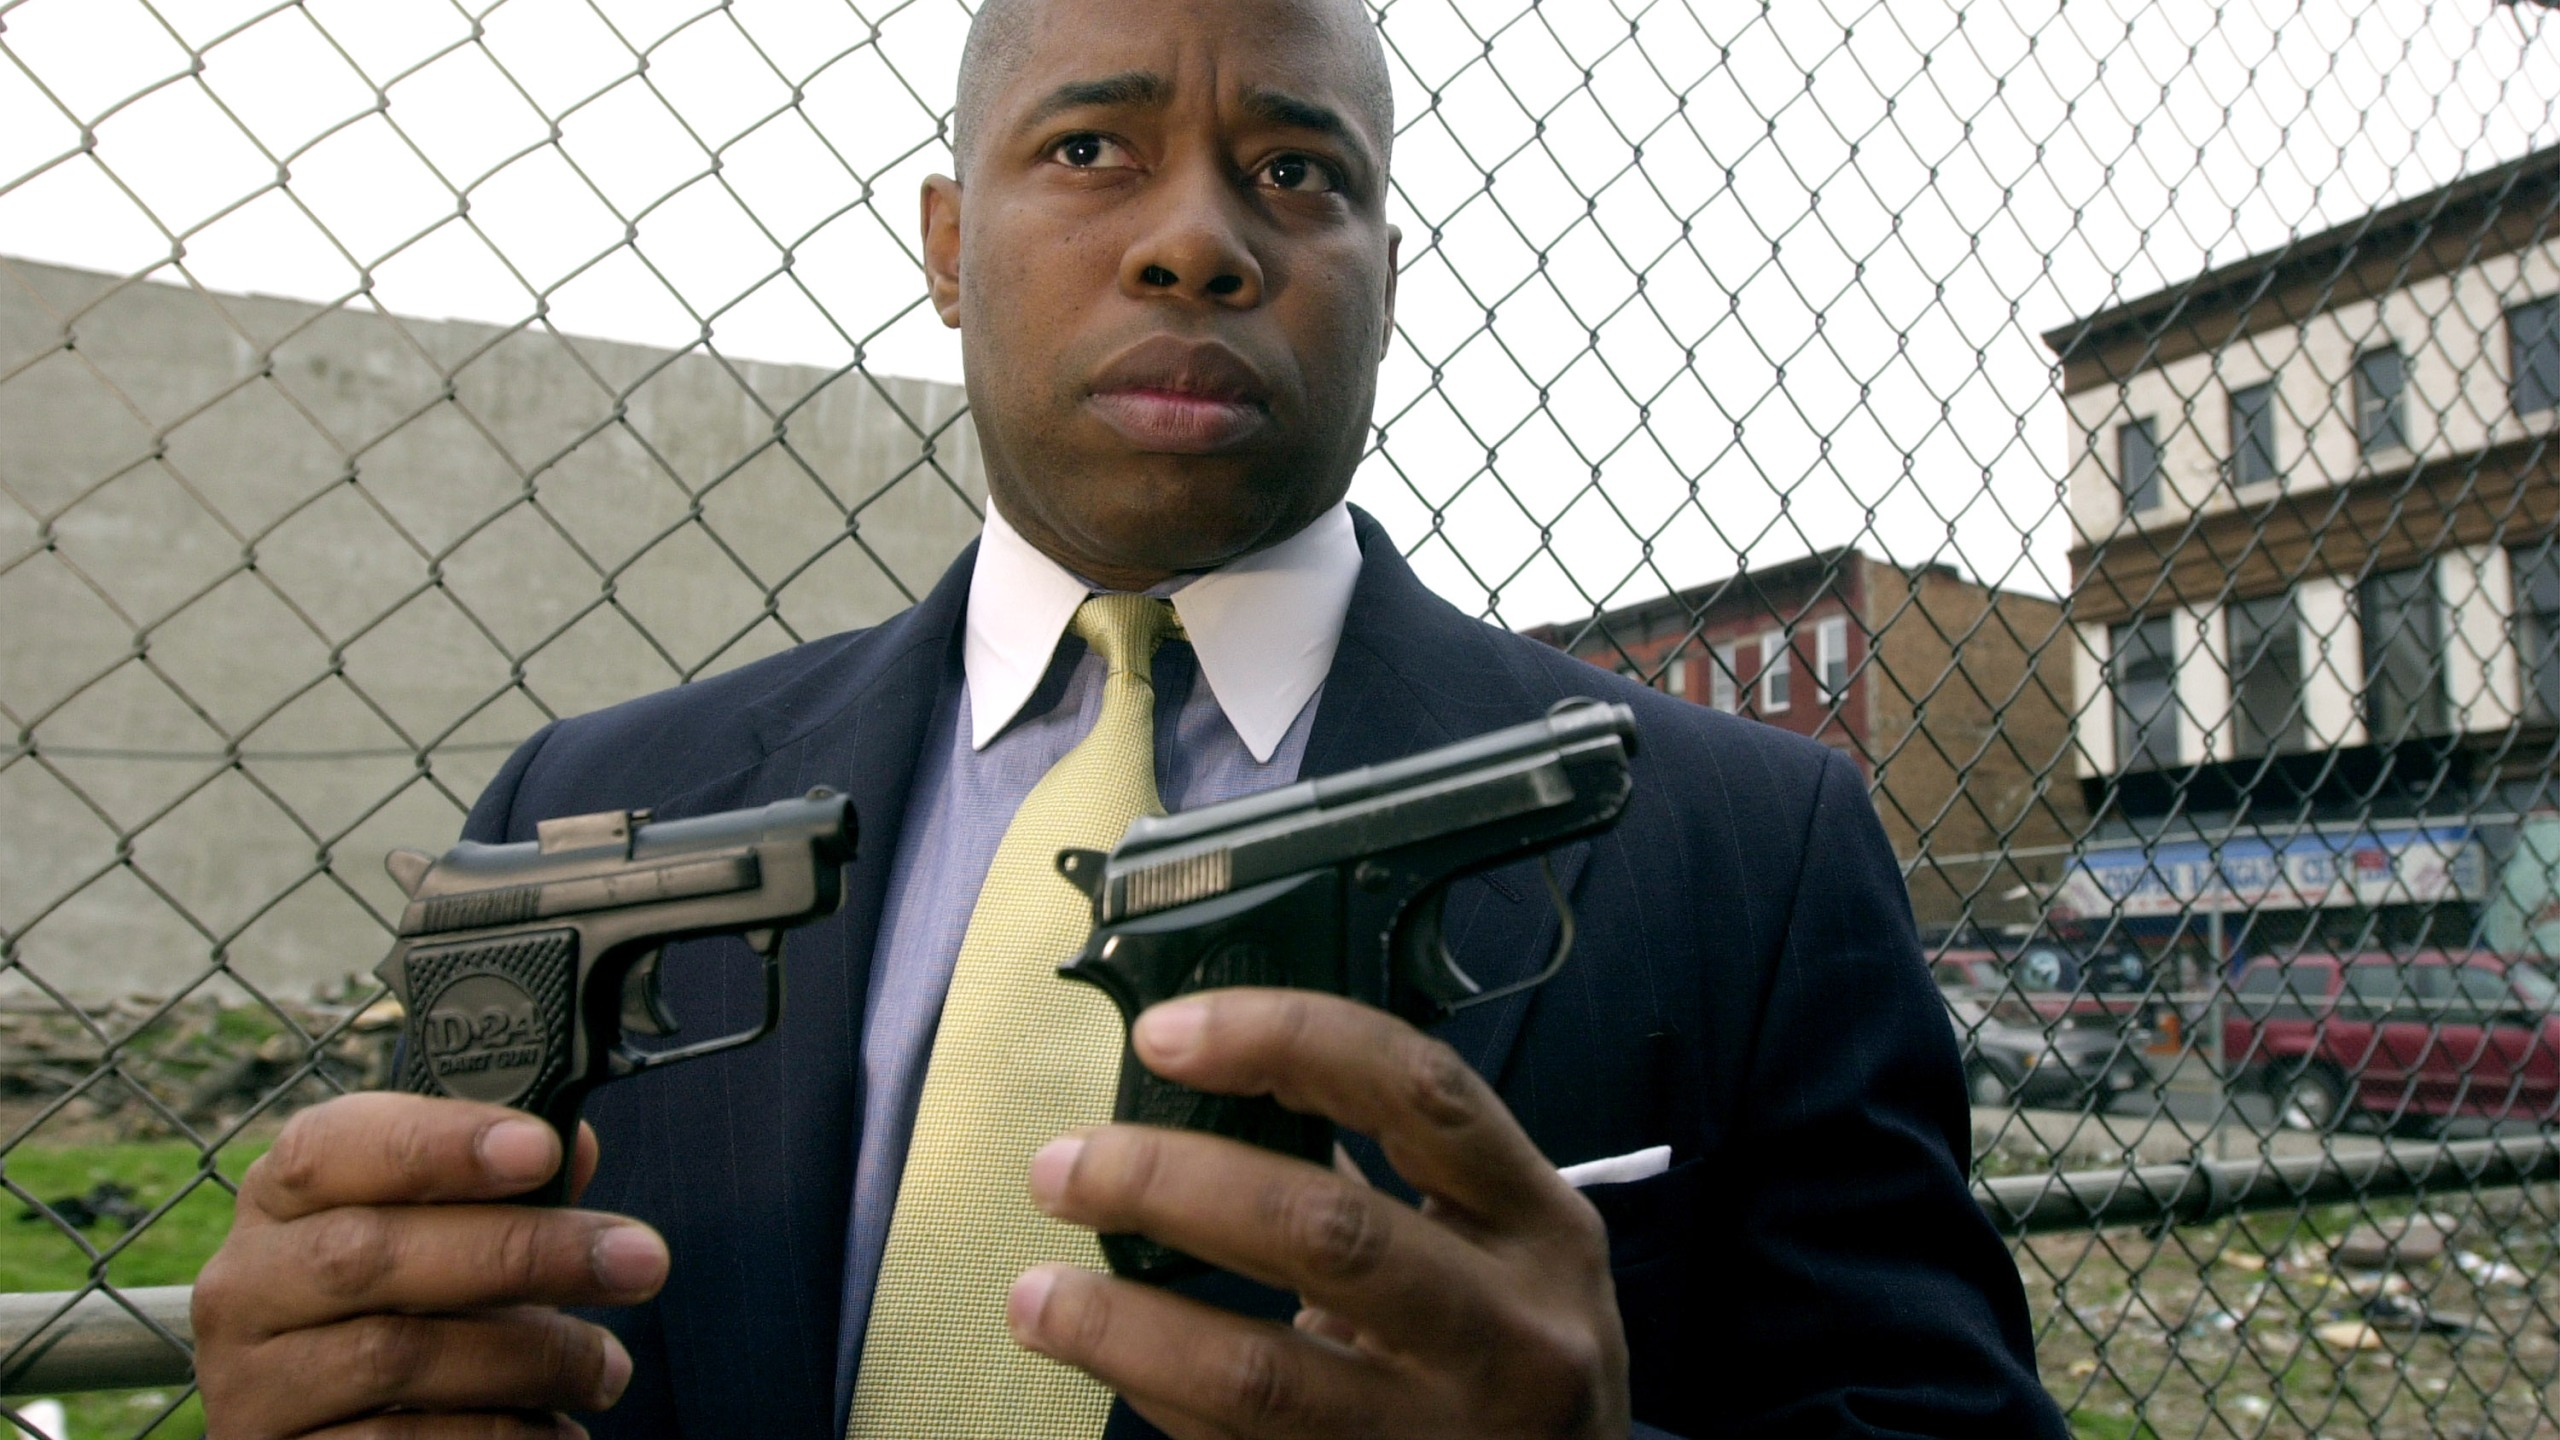 Eric Adams, a lieutenant in the New York Police Department and co-founder of 100 Black Men in Law Enforcement organization, holds up a toy gun, left, and a real gun to show the similarity between the two during a press conference in the Ocean Hill Brownsville neighborhood of Brooklyn. (Credit: by Chris Hondros)